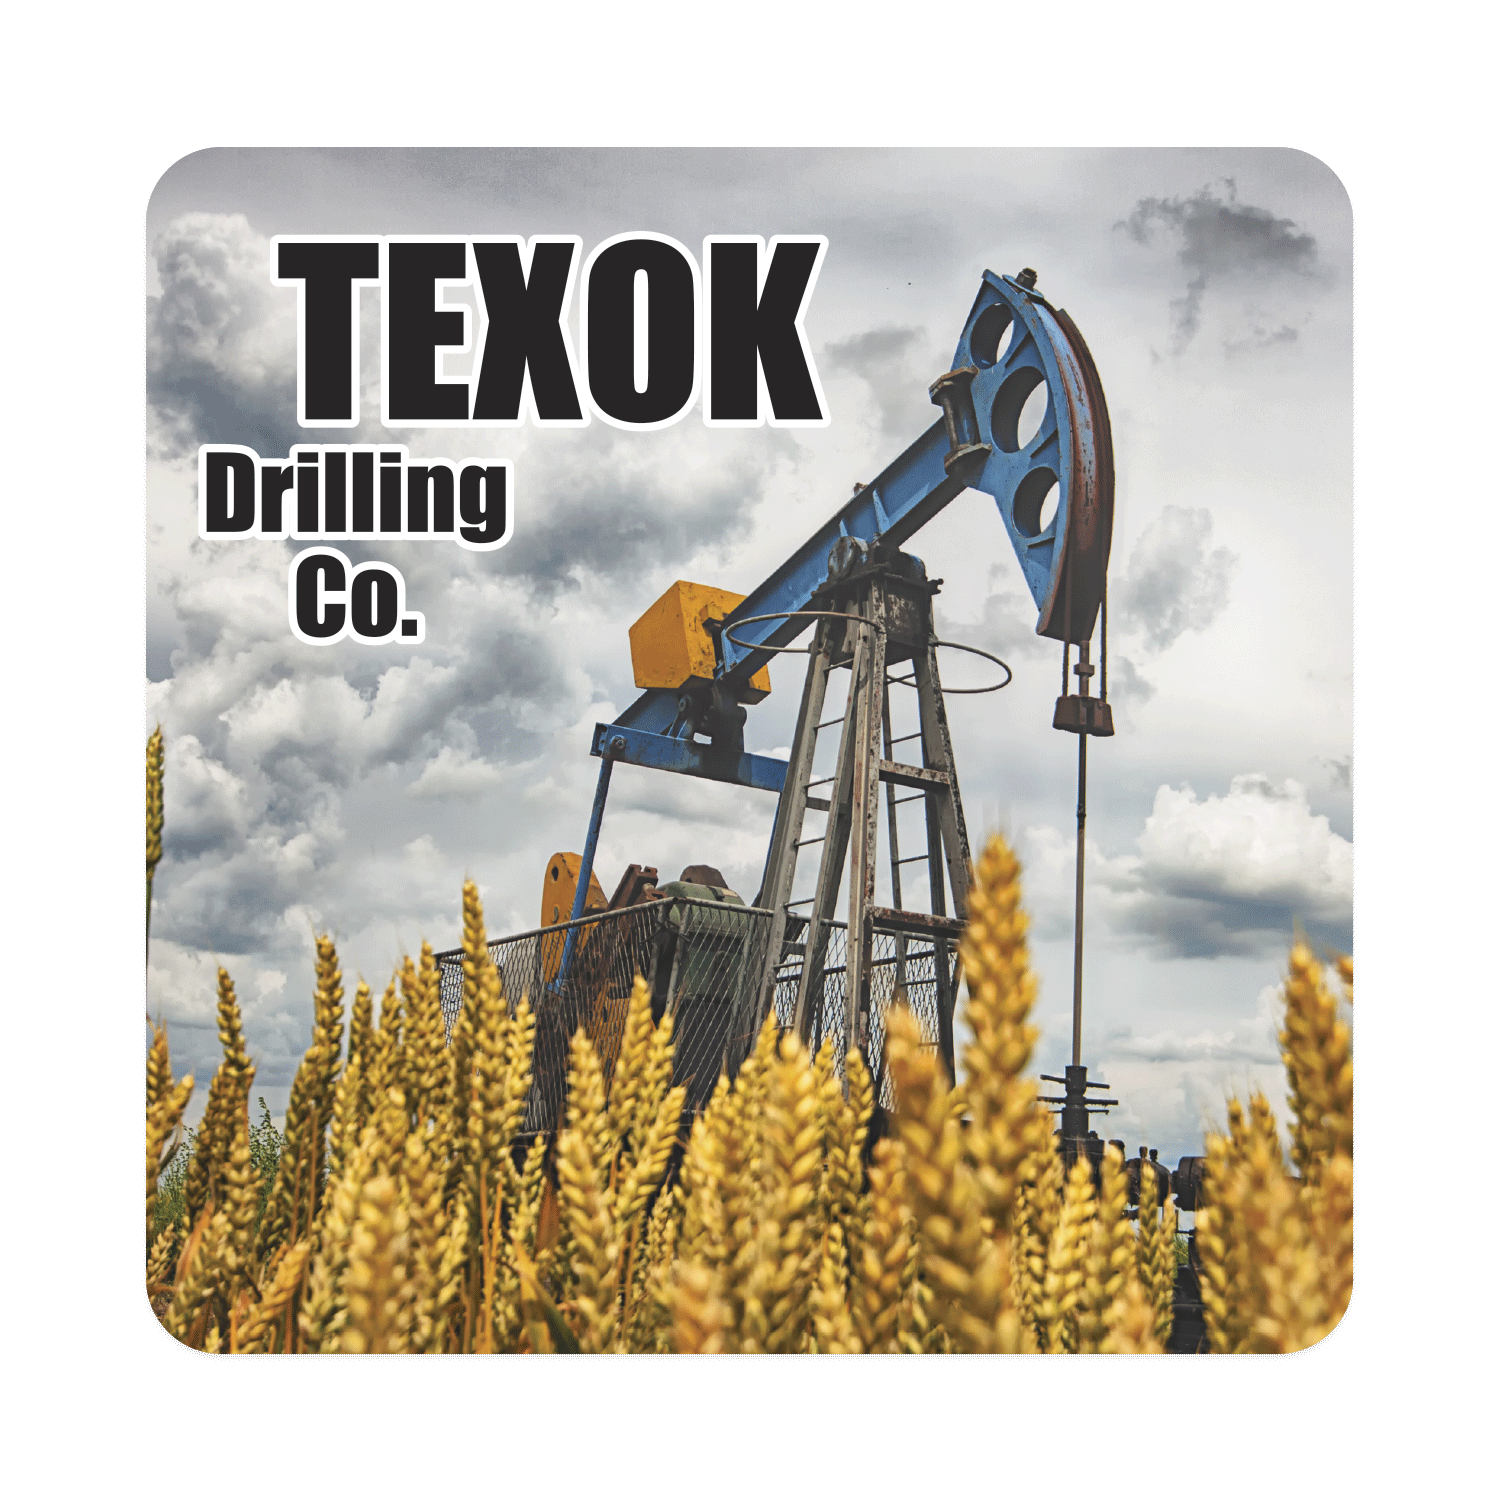 https://www.sswprinting.com/images/products_gallery_images/14605_TEXOK-Drilling_hi-res.png